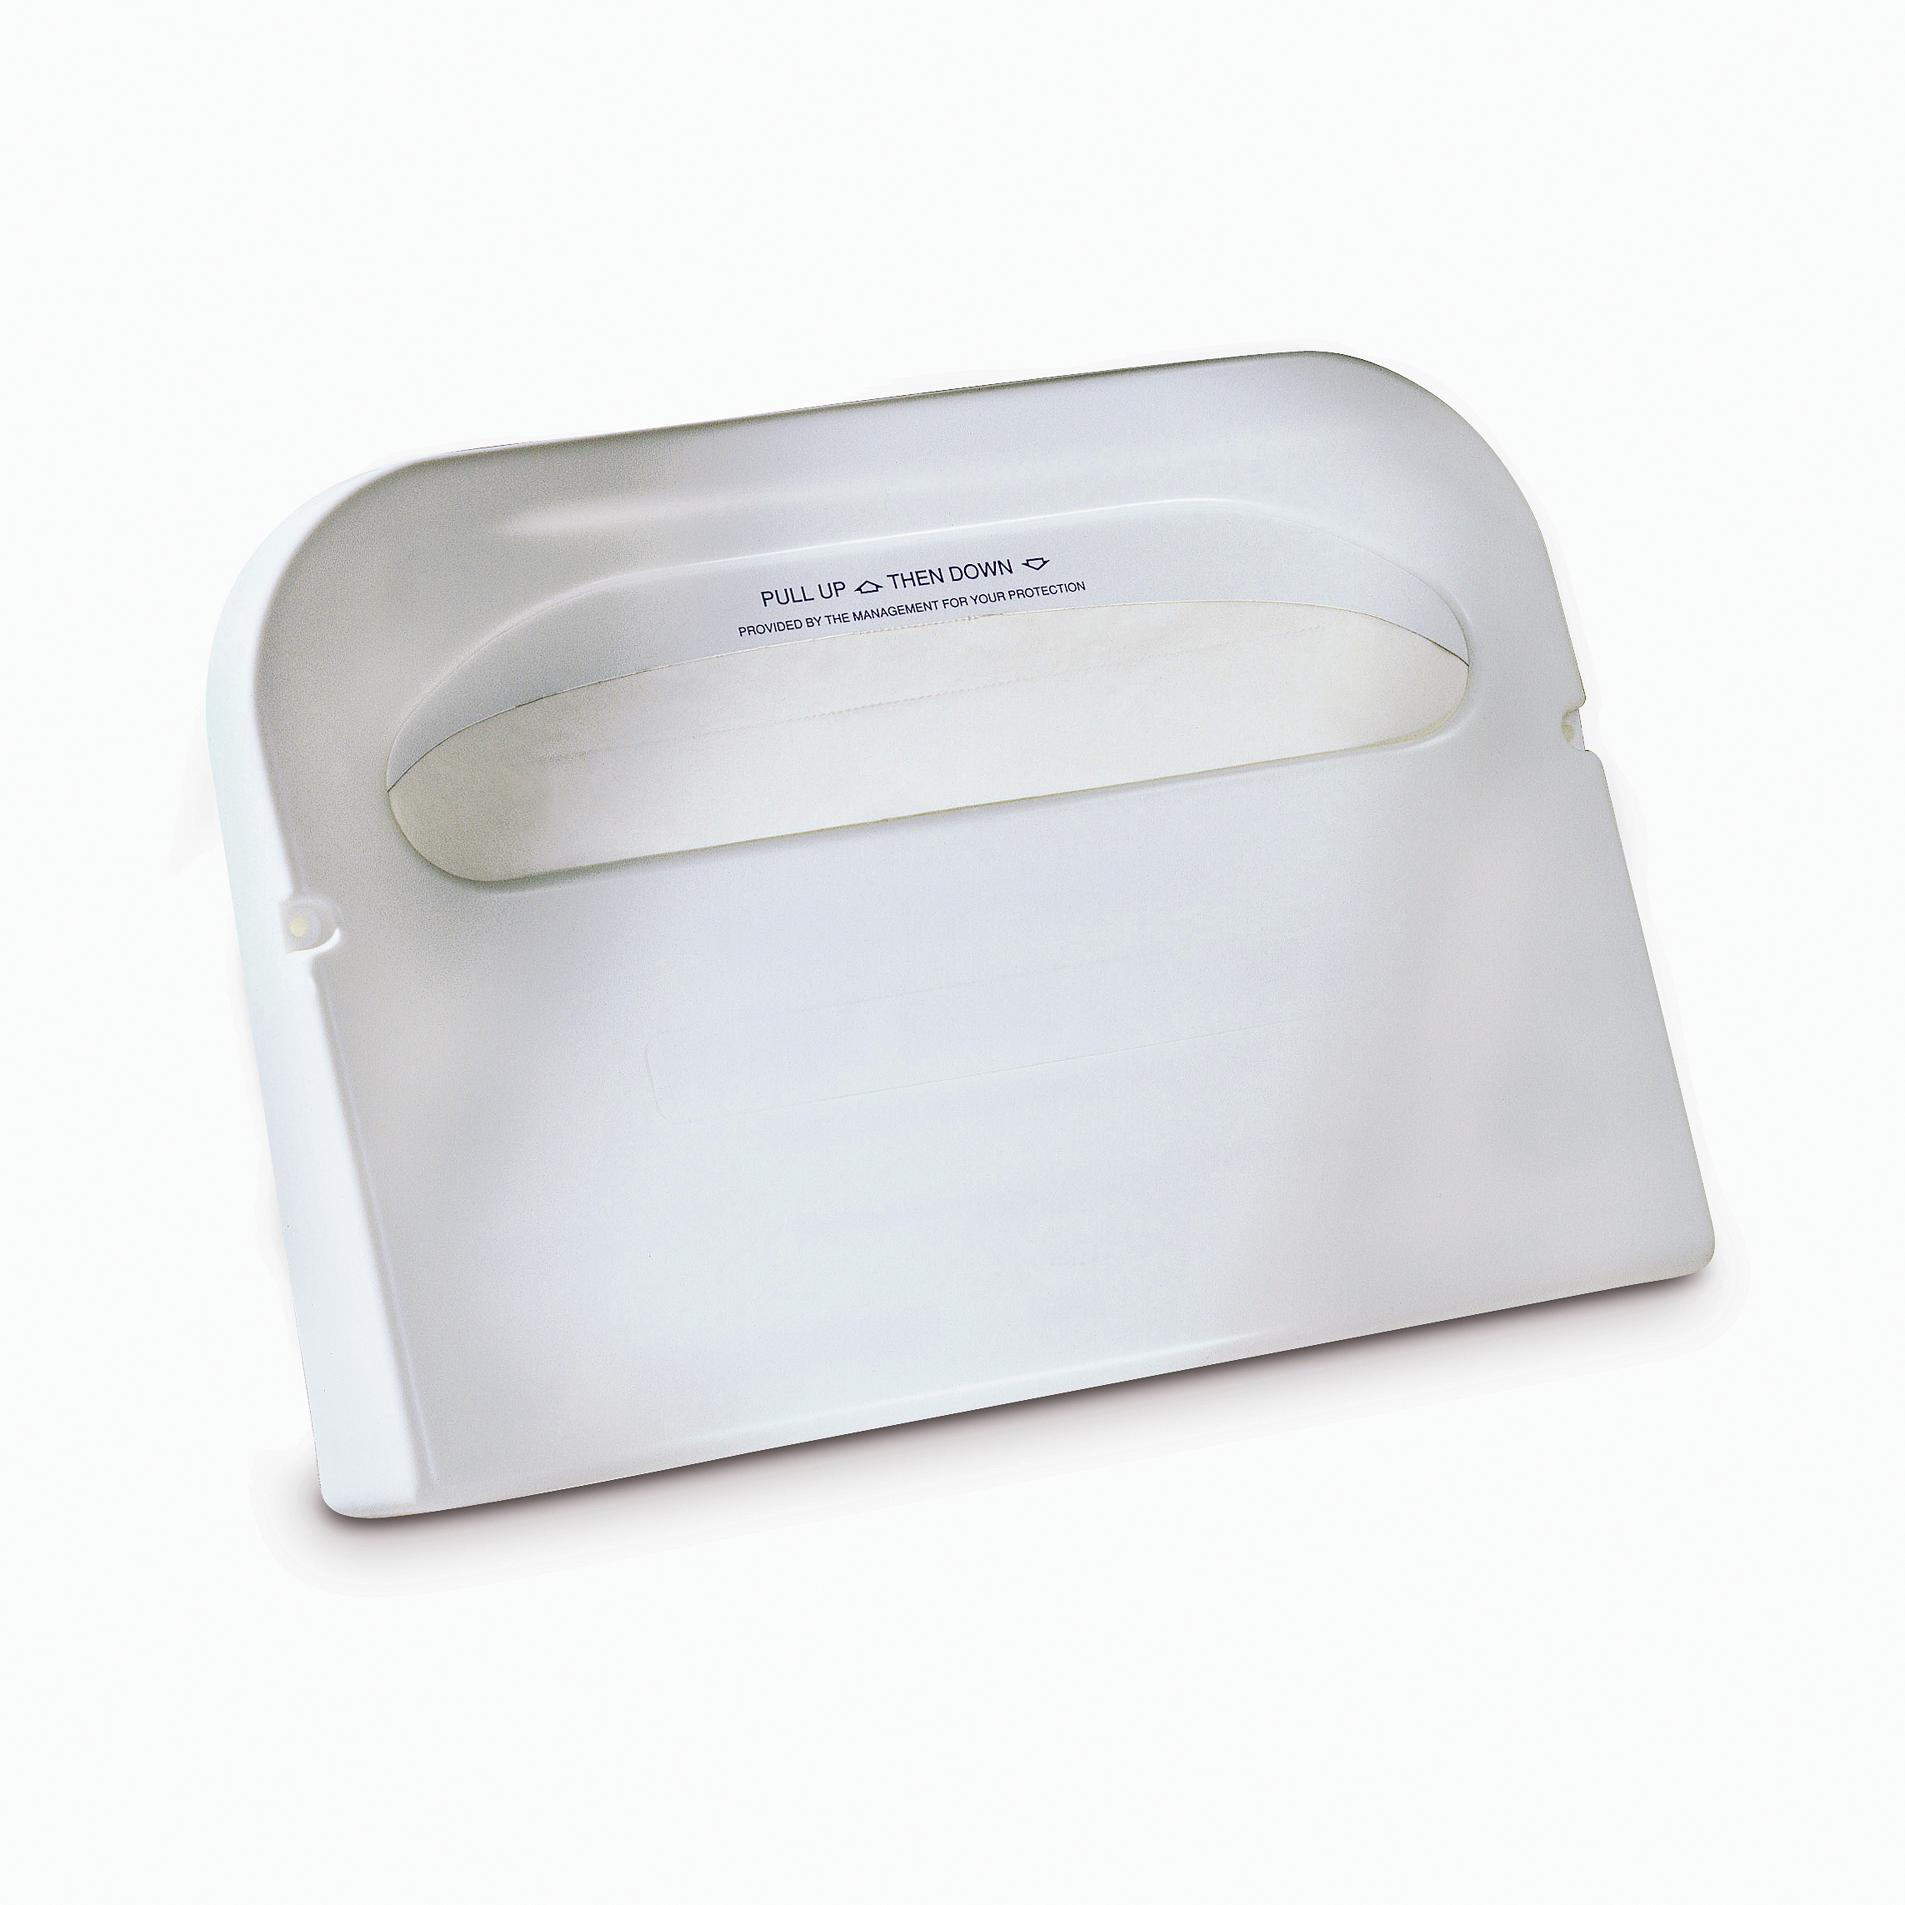 10073286612783 99A - Tork Toilet Seat Cover Dispenser, 1/2 Fold, White